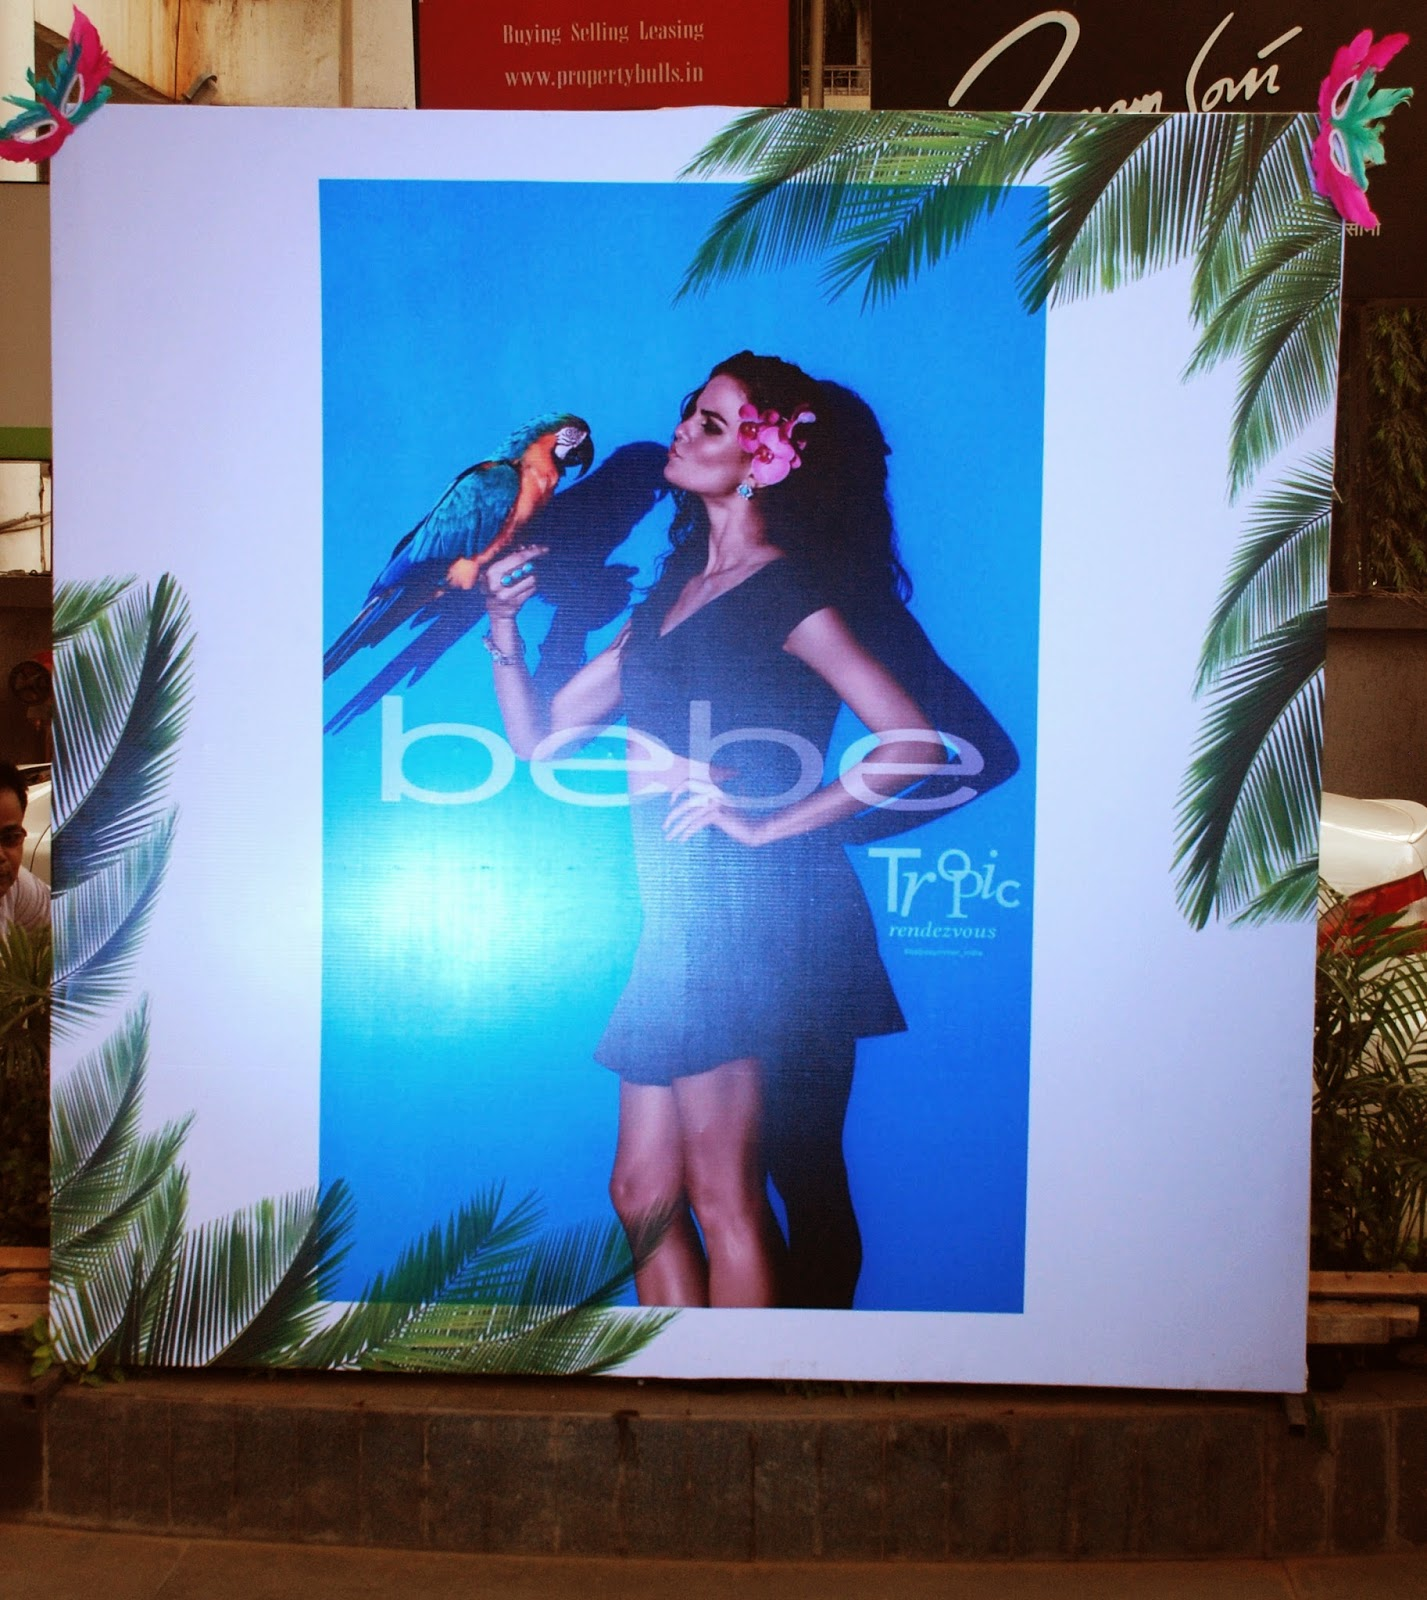 Bebe Tropic Rendezvous Event, Linking Road